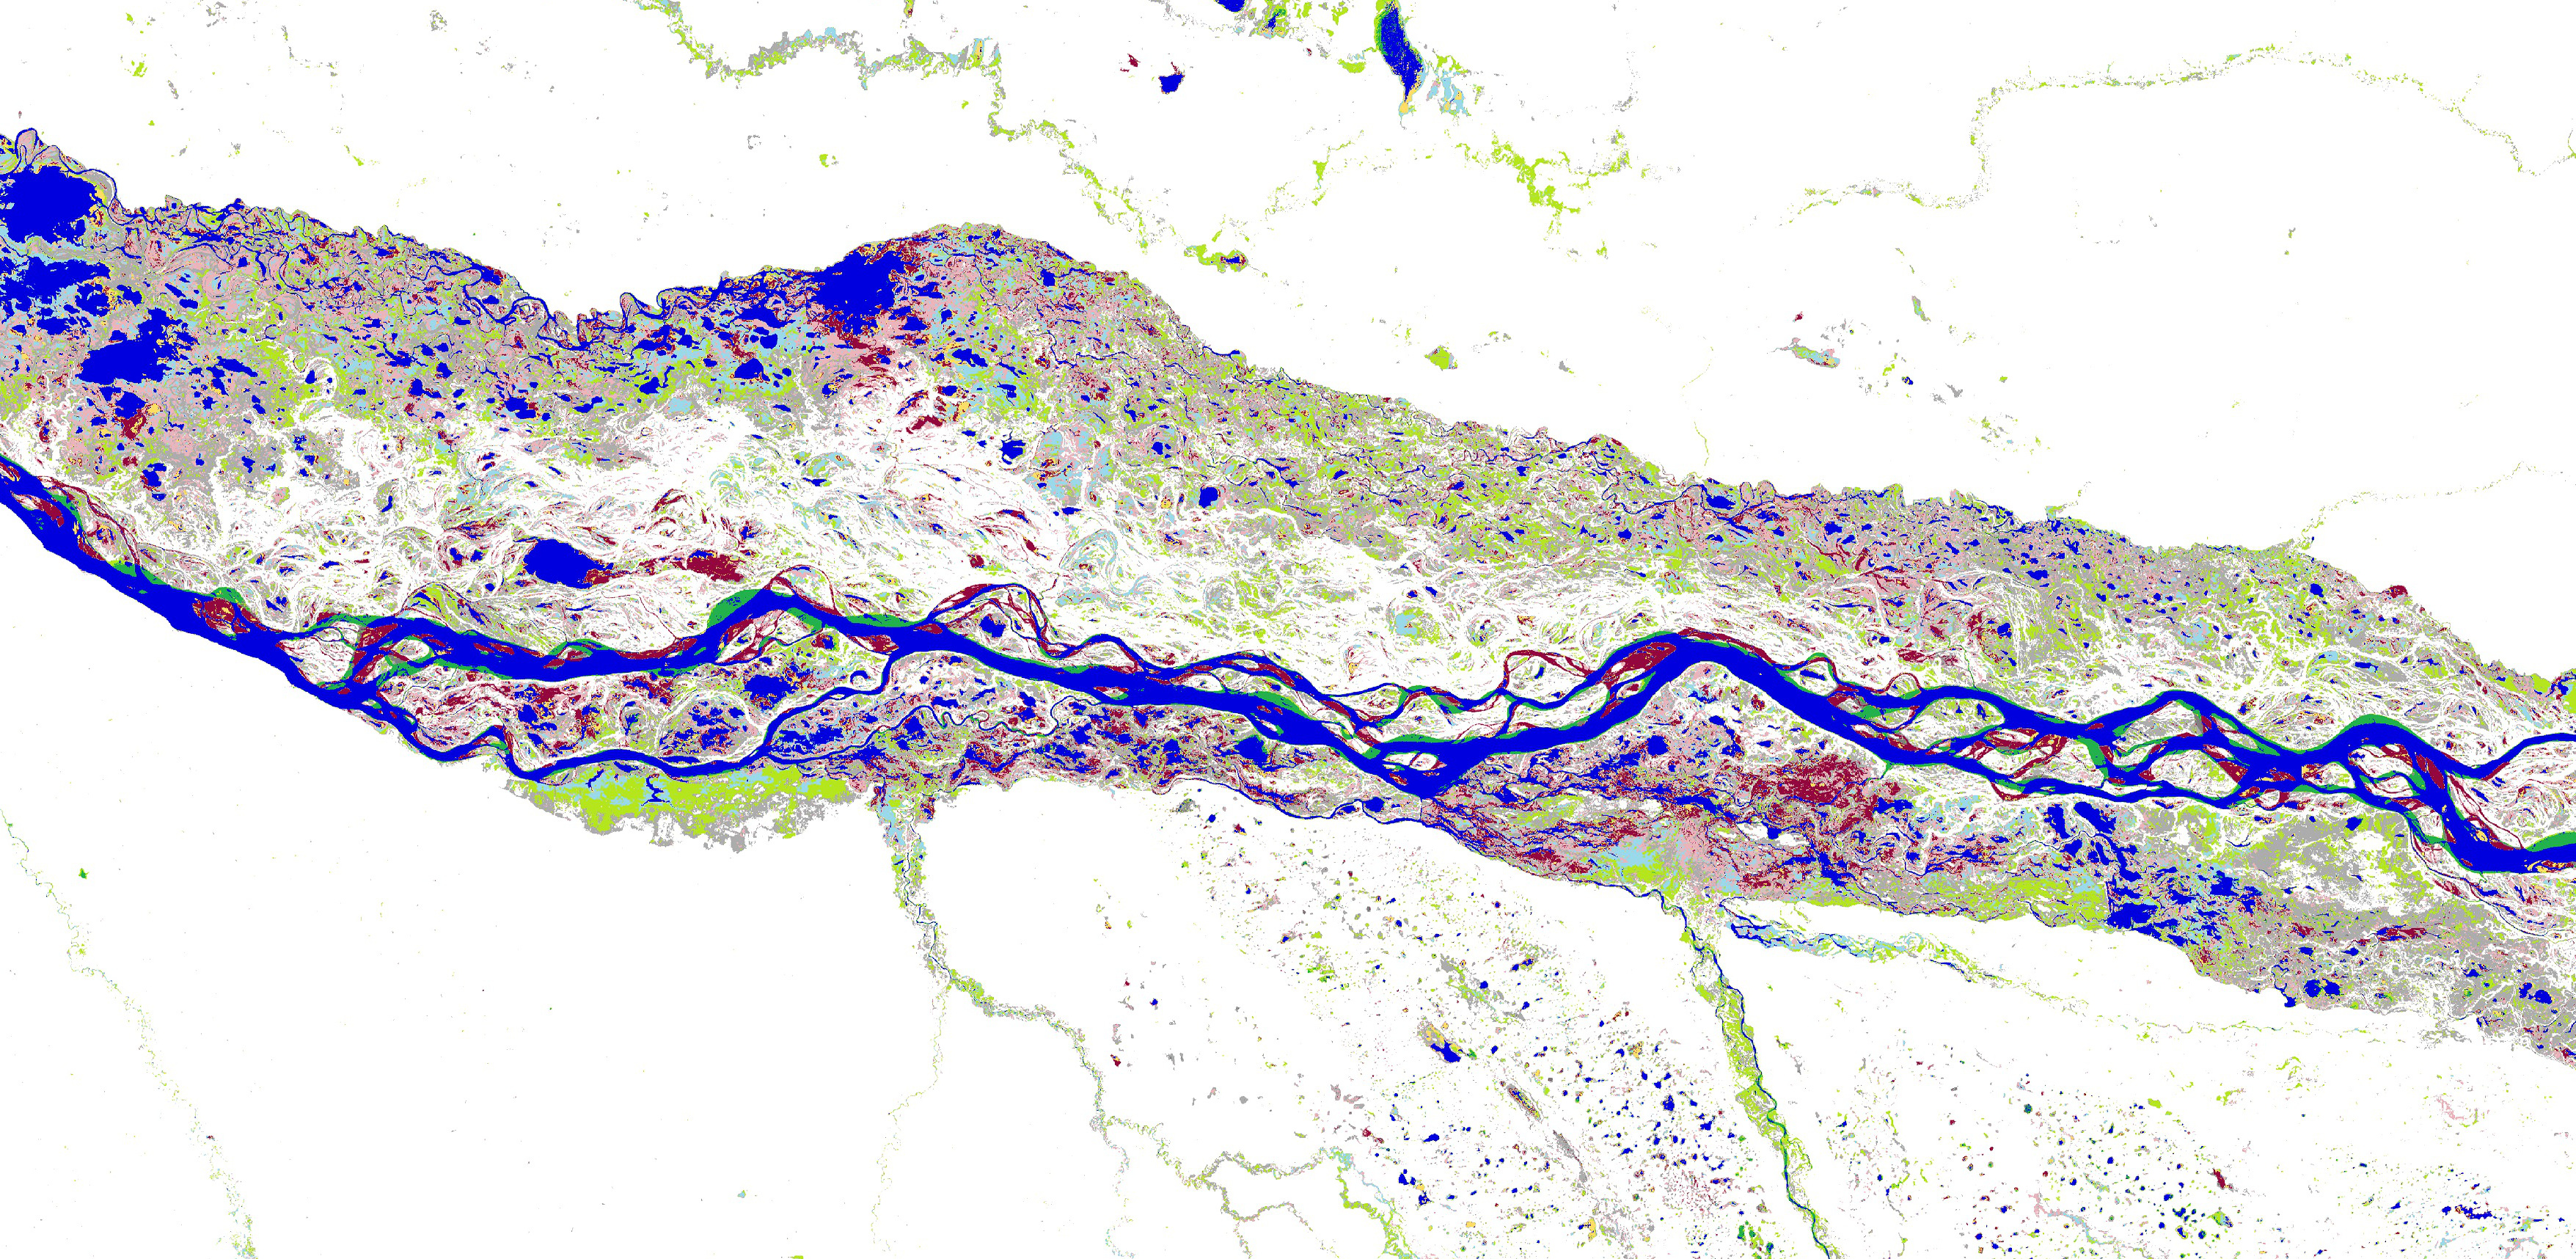 Maps Of Earths Surface Water Show Changes Over Past Years - Parana river map